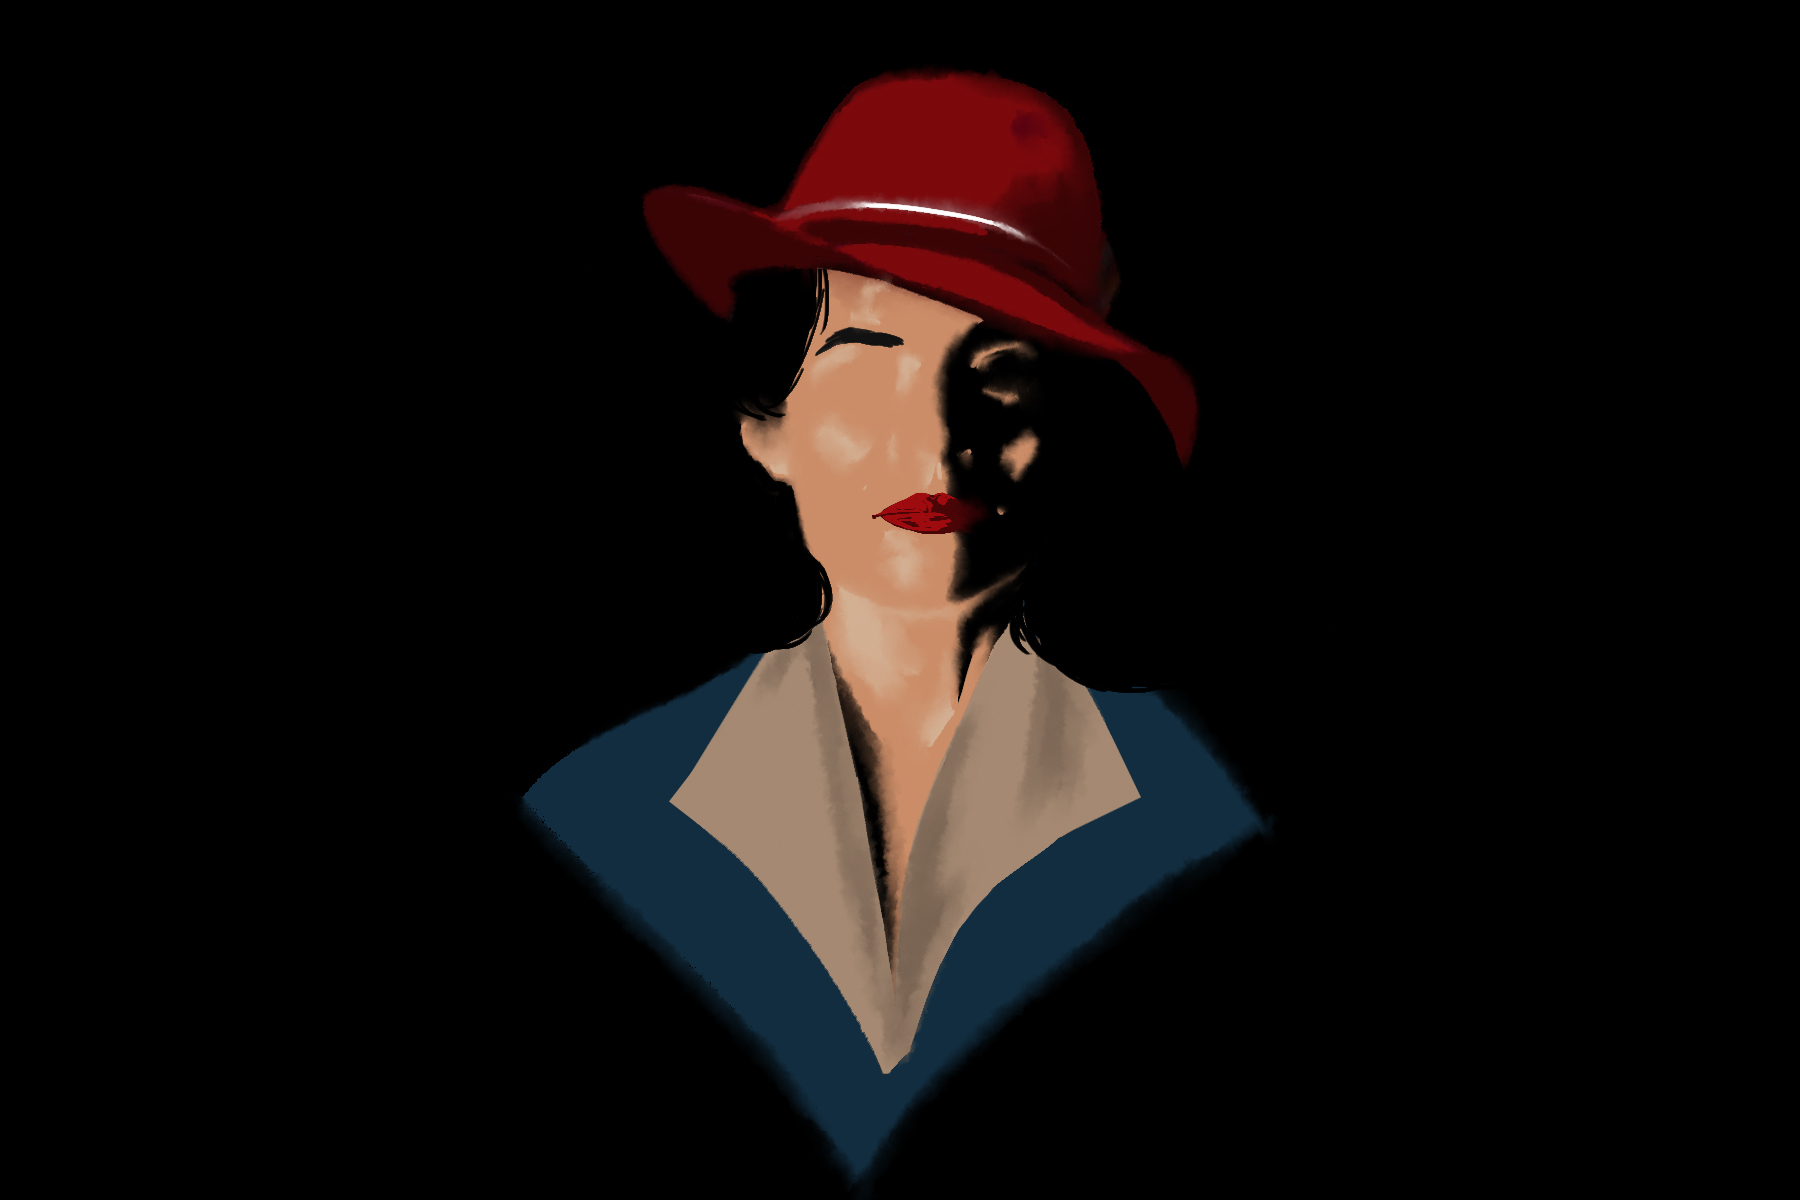 Illustration of Peggy Carter from Agent Carter